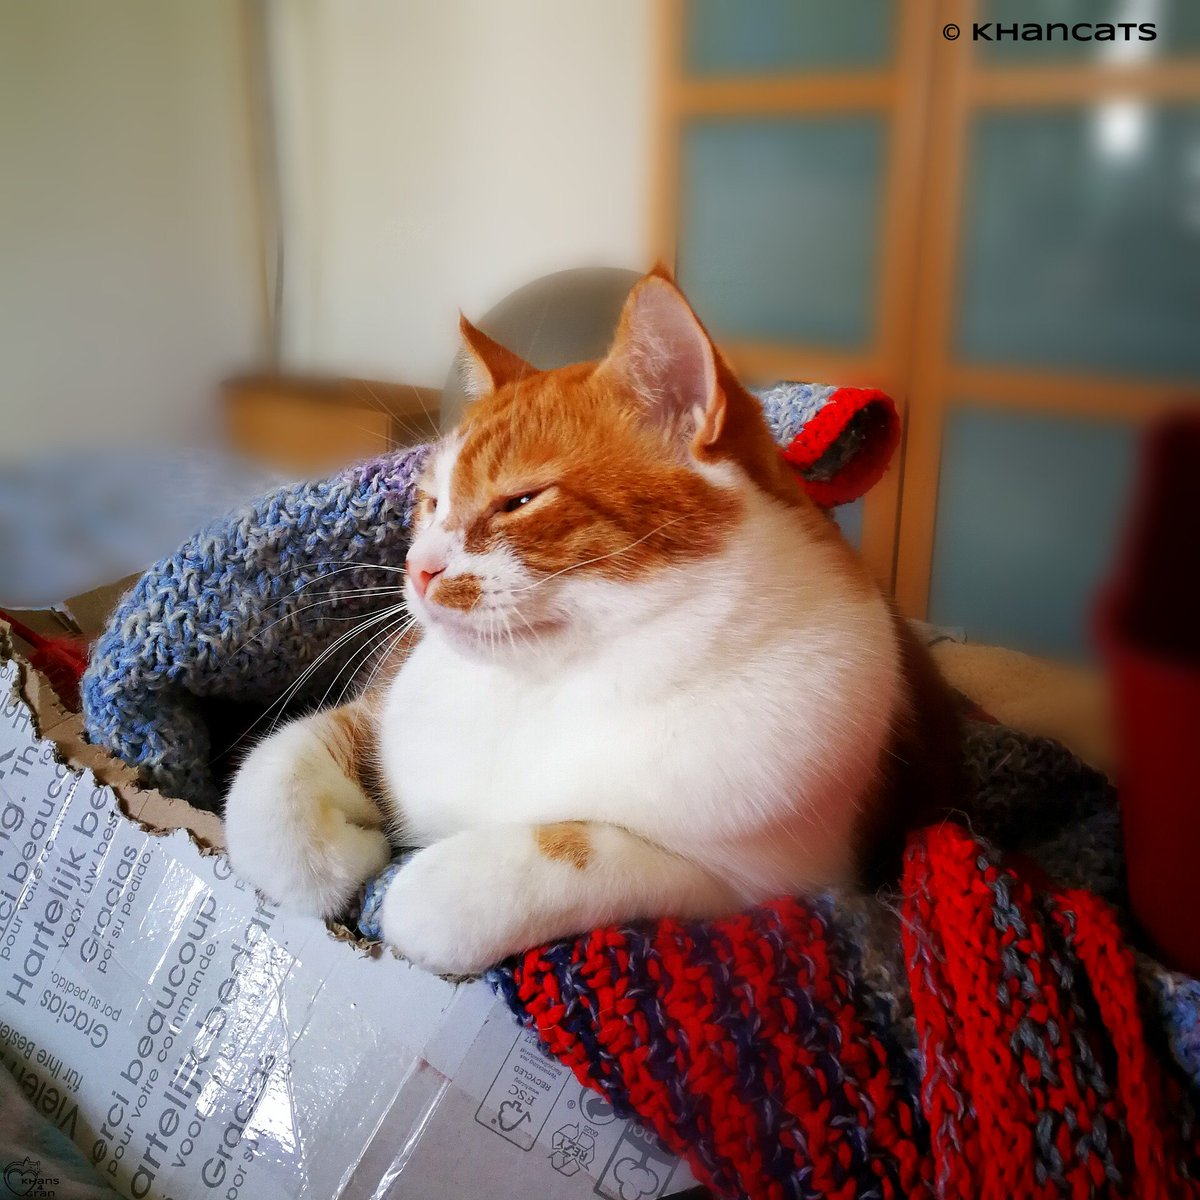 i need a day between #Caturday &amp; #catboxsunday ...&amp; lots of covfefee #SundayMorning #CatsOfTwitter @mirrr_i_Am @MiloCarrotCat @3coolkatz<br>http://pic.twitter.com/kgu3ppgDGr